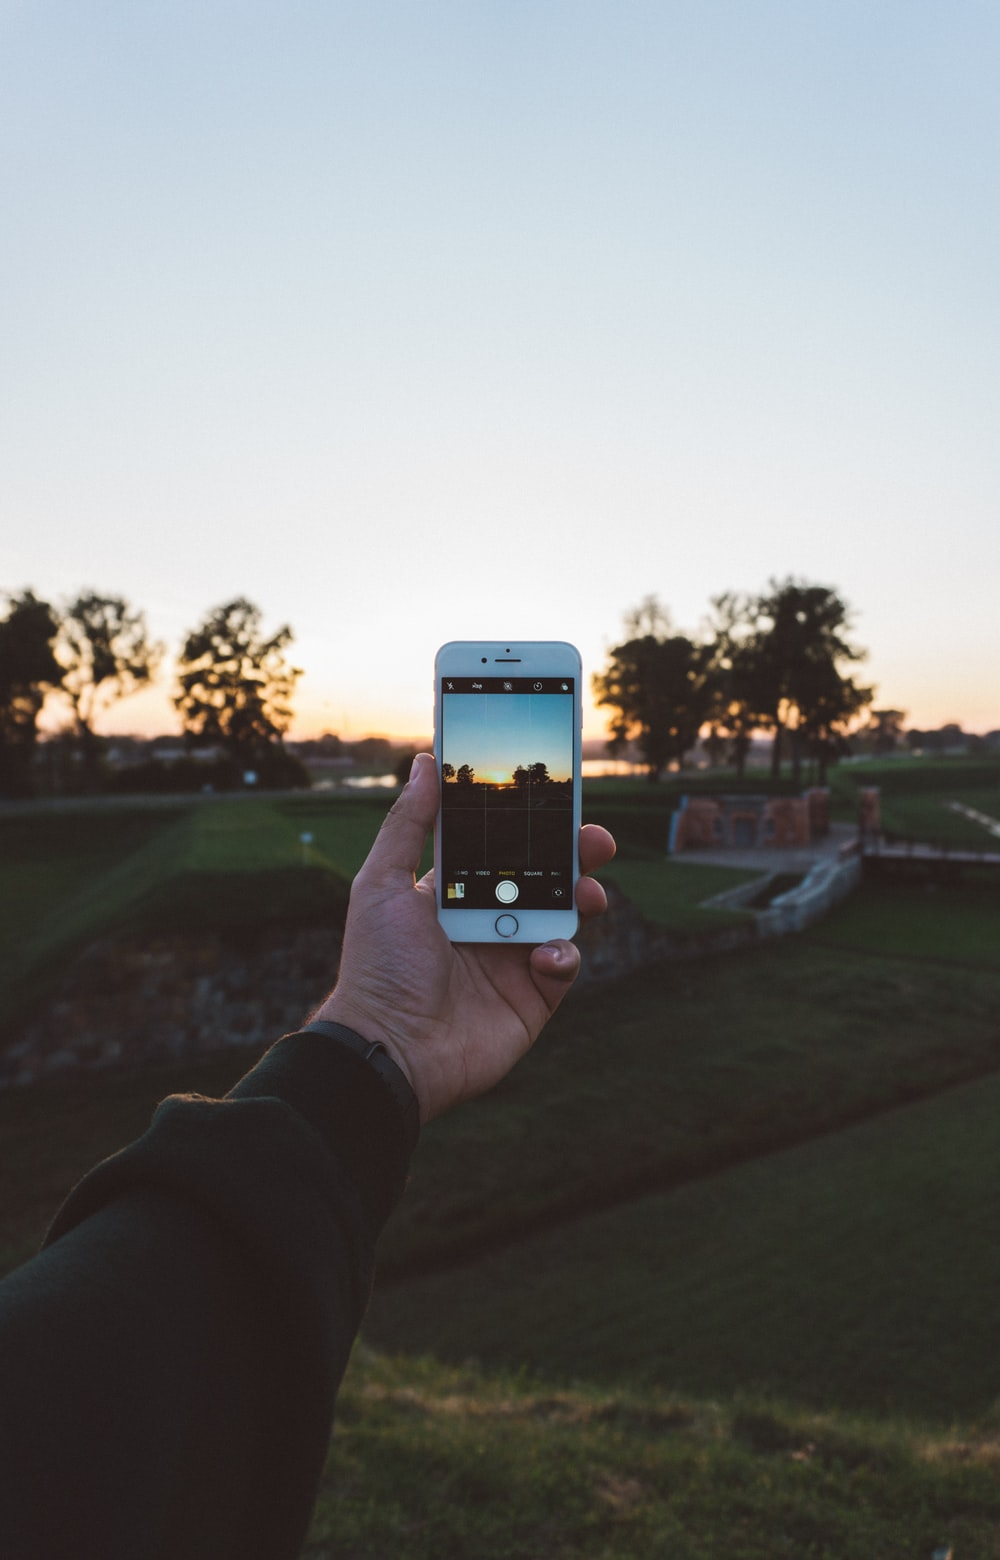 person holding iPhone white taking picture during daytime